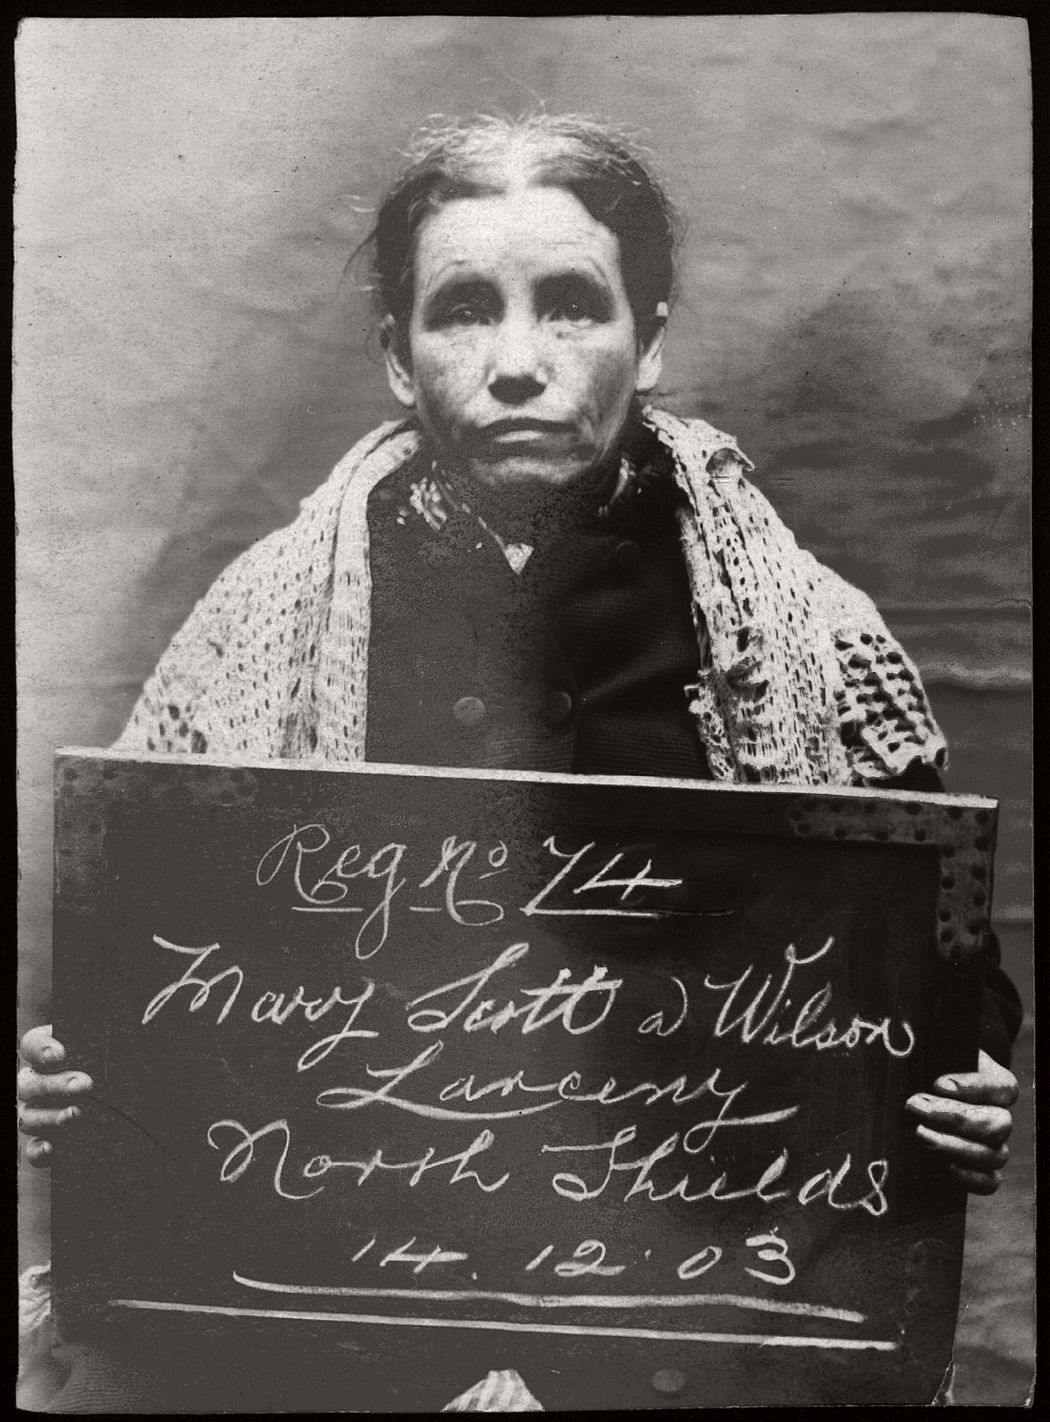 vintage-mug-shot-of-women-criminals-from-north-shields-1903-1905-16